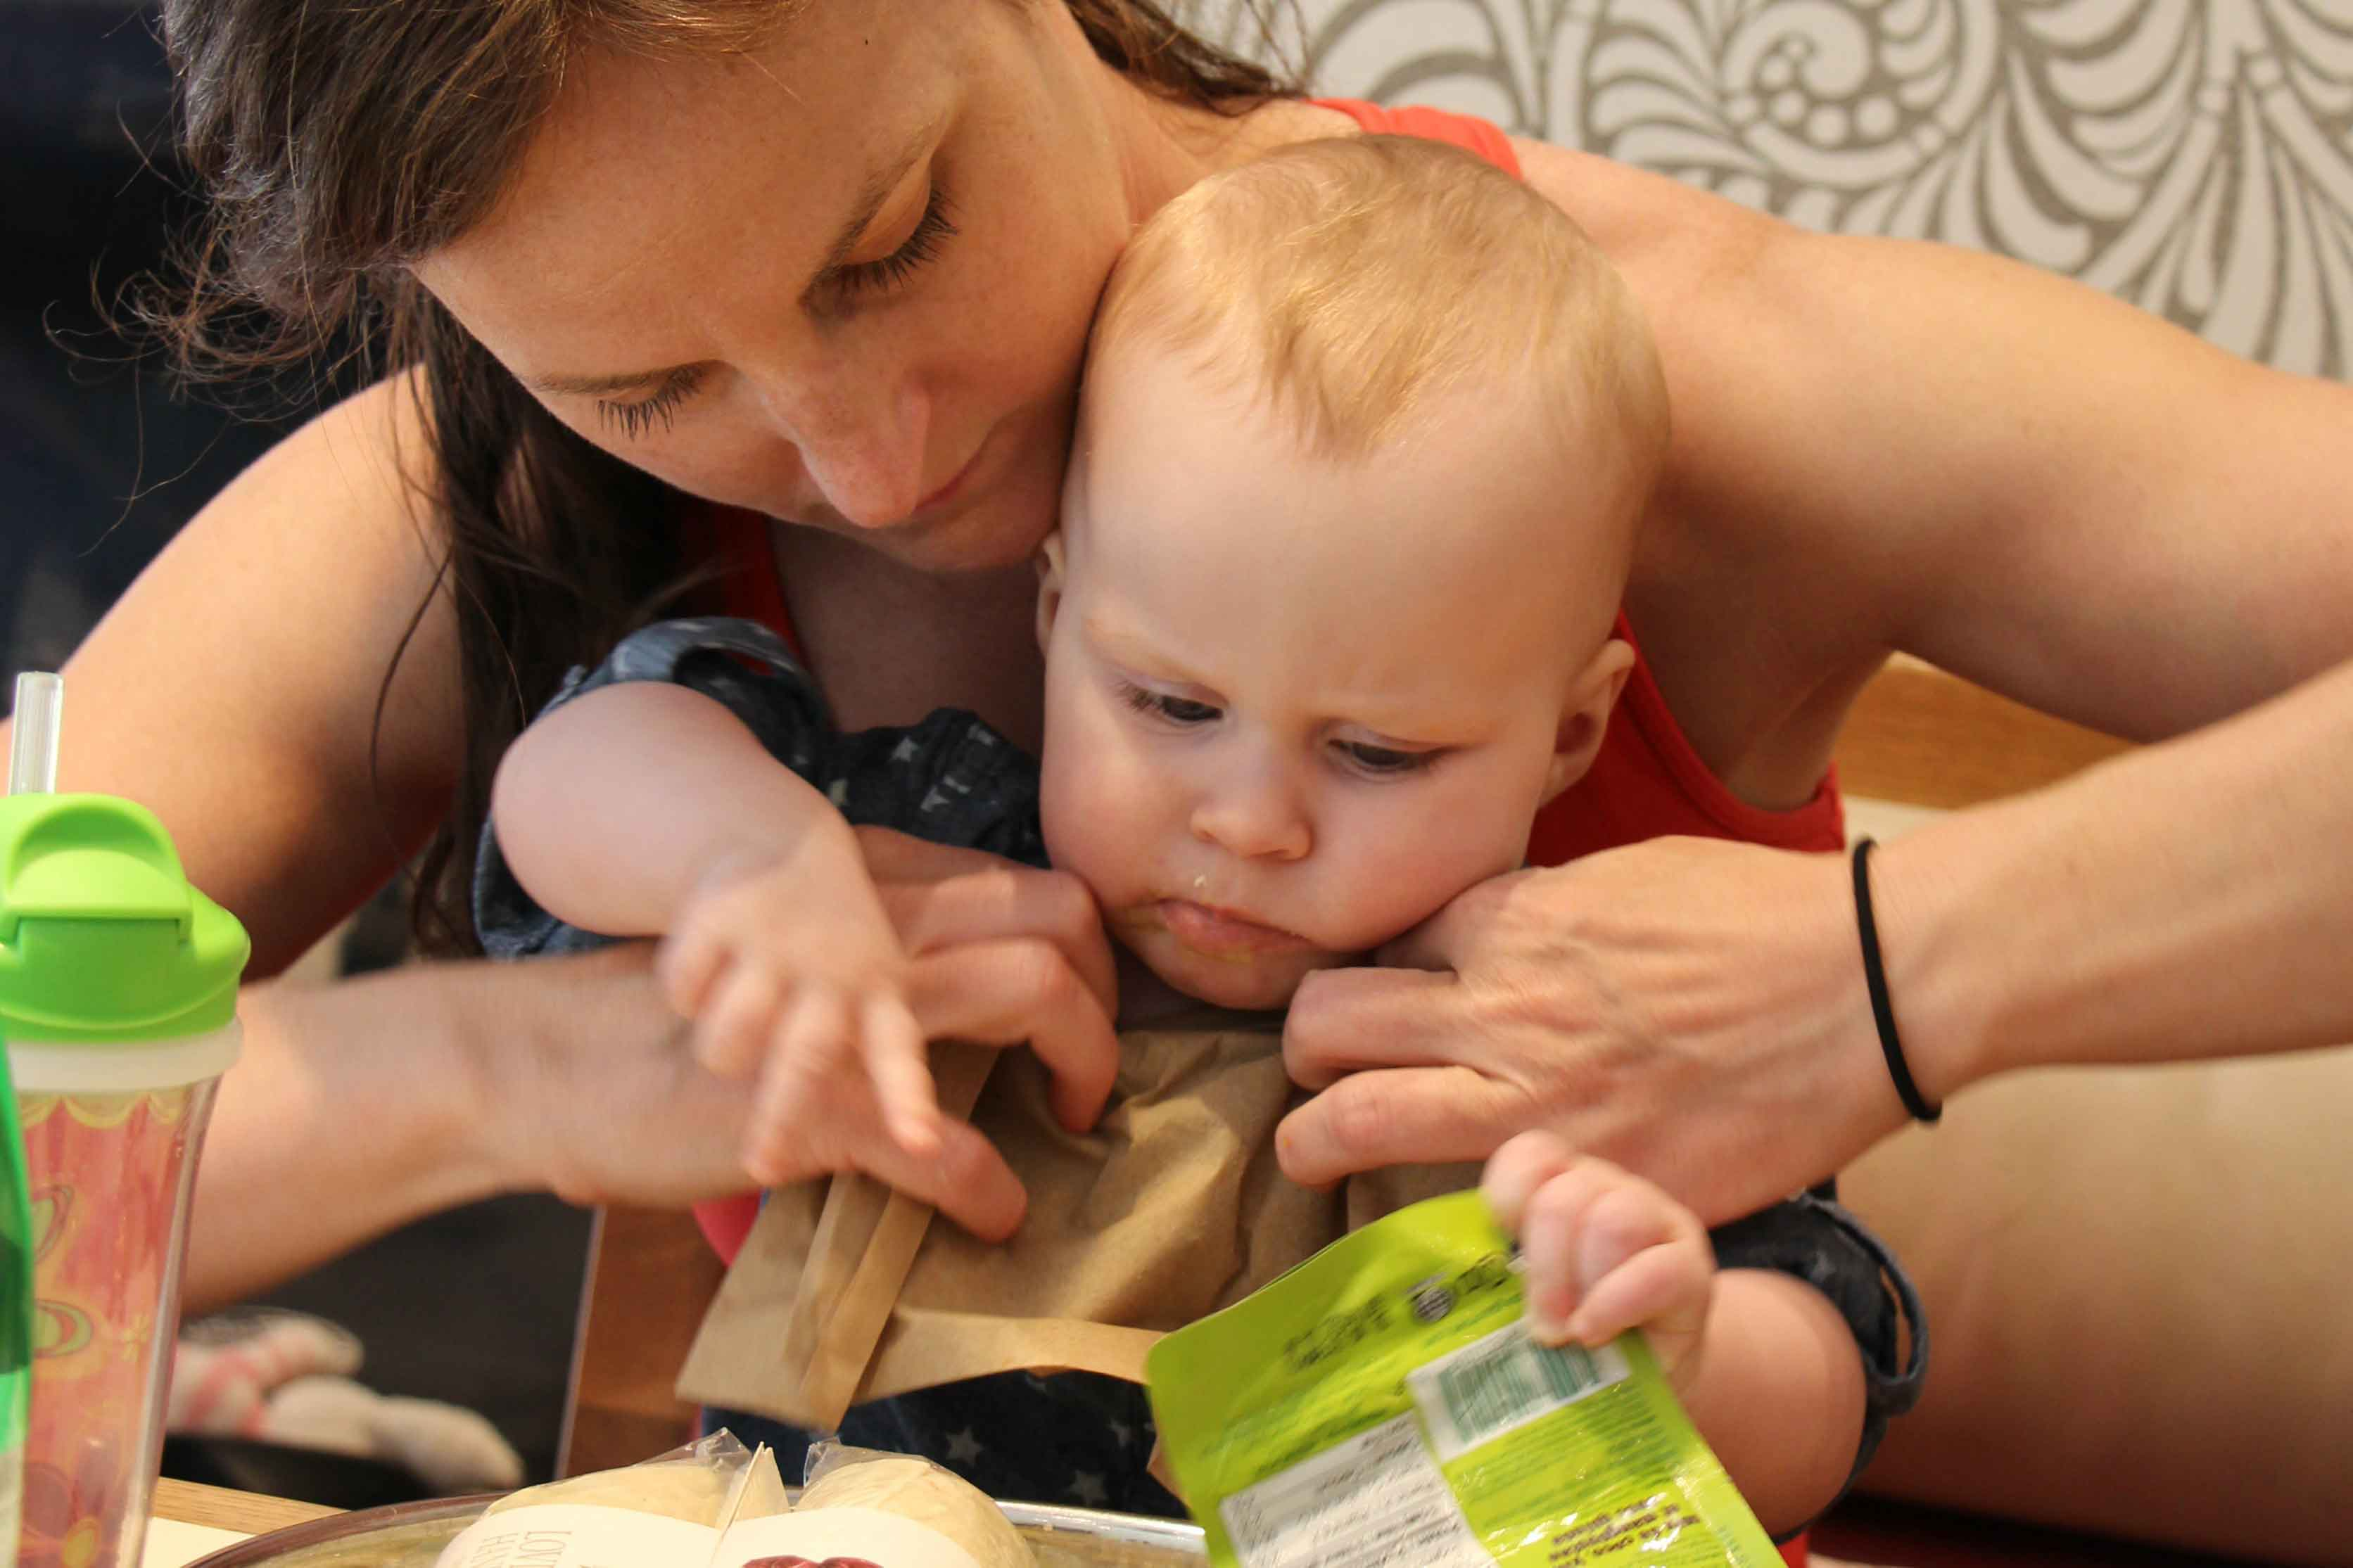 Baby-Can-Travel---Travel-Highchair-Comparison---Baby-Eating-on-lap